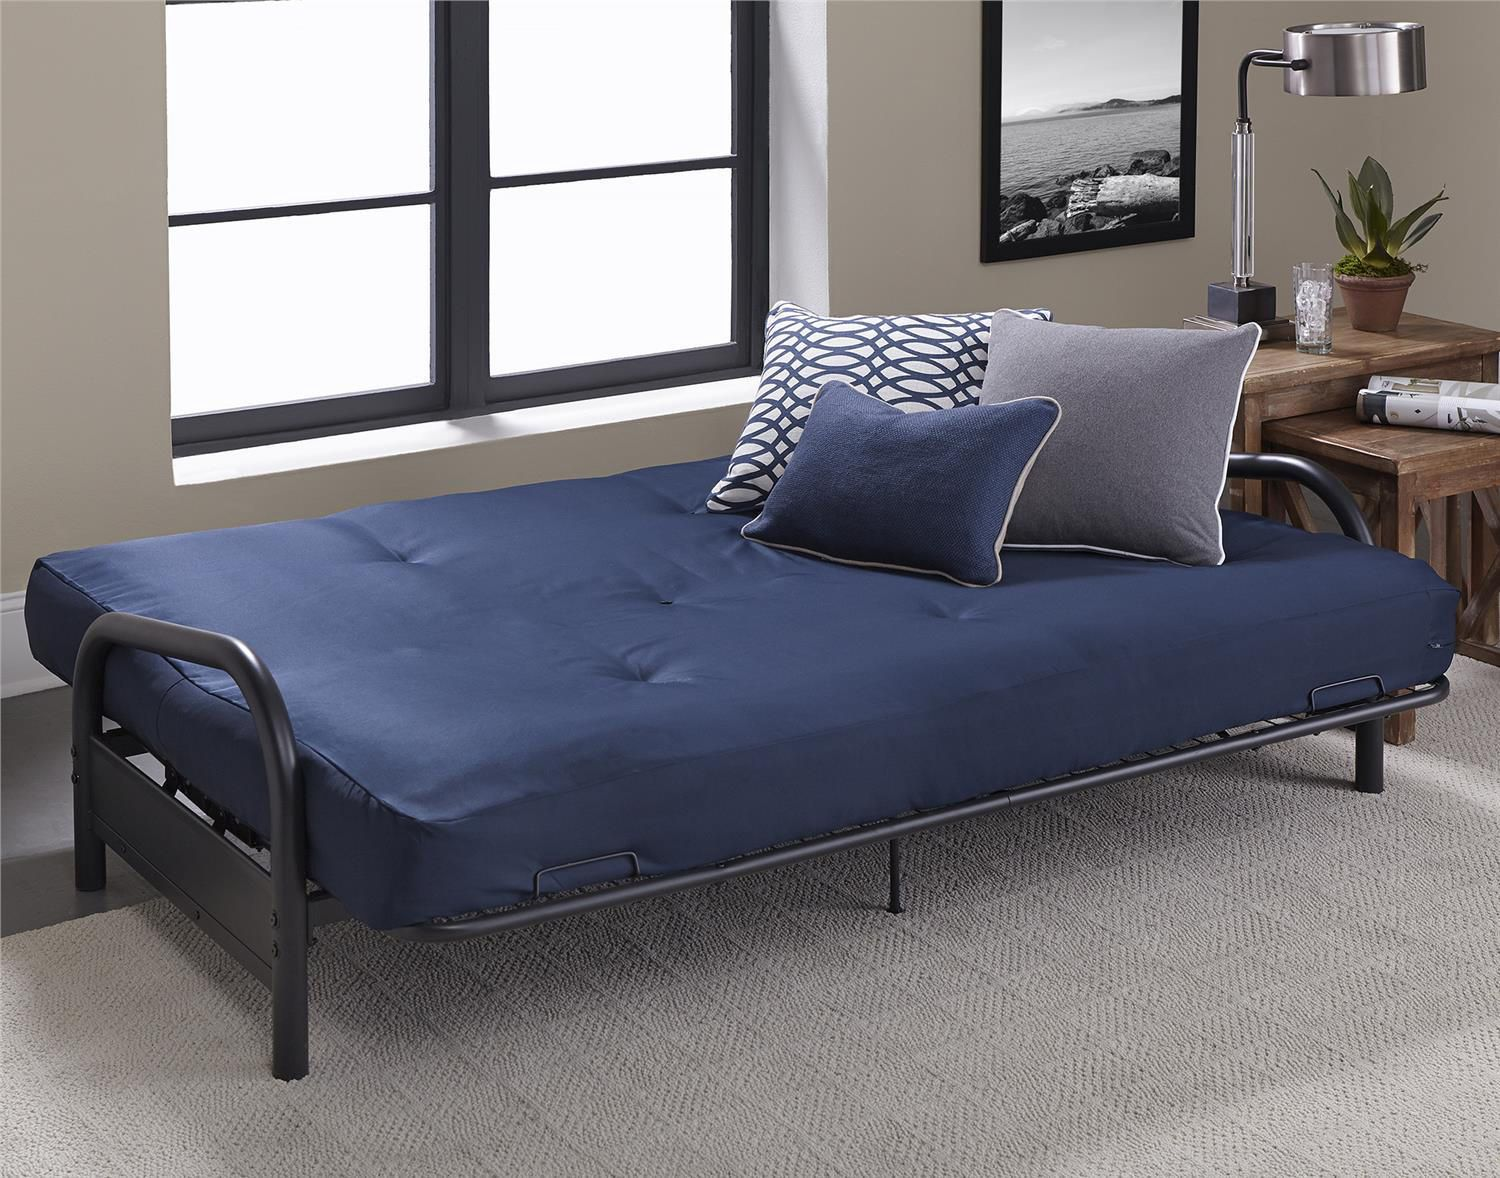 mattress colors full futon size com walmart multiple ip